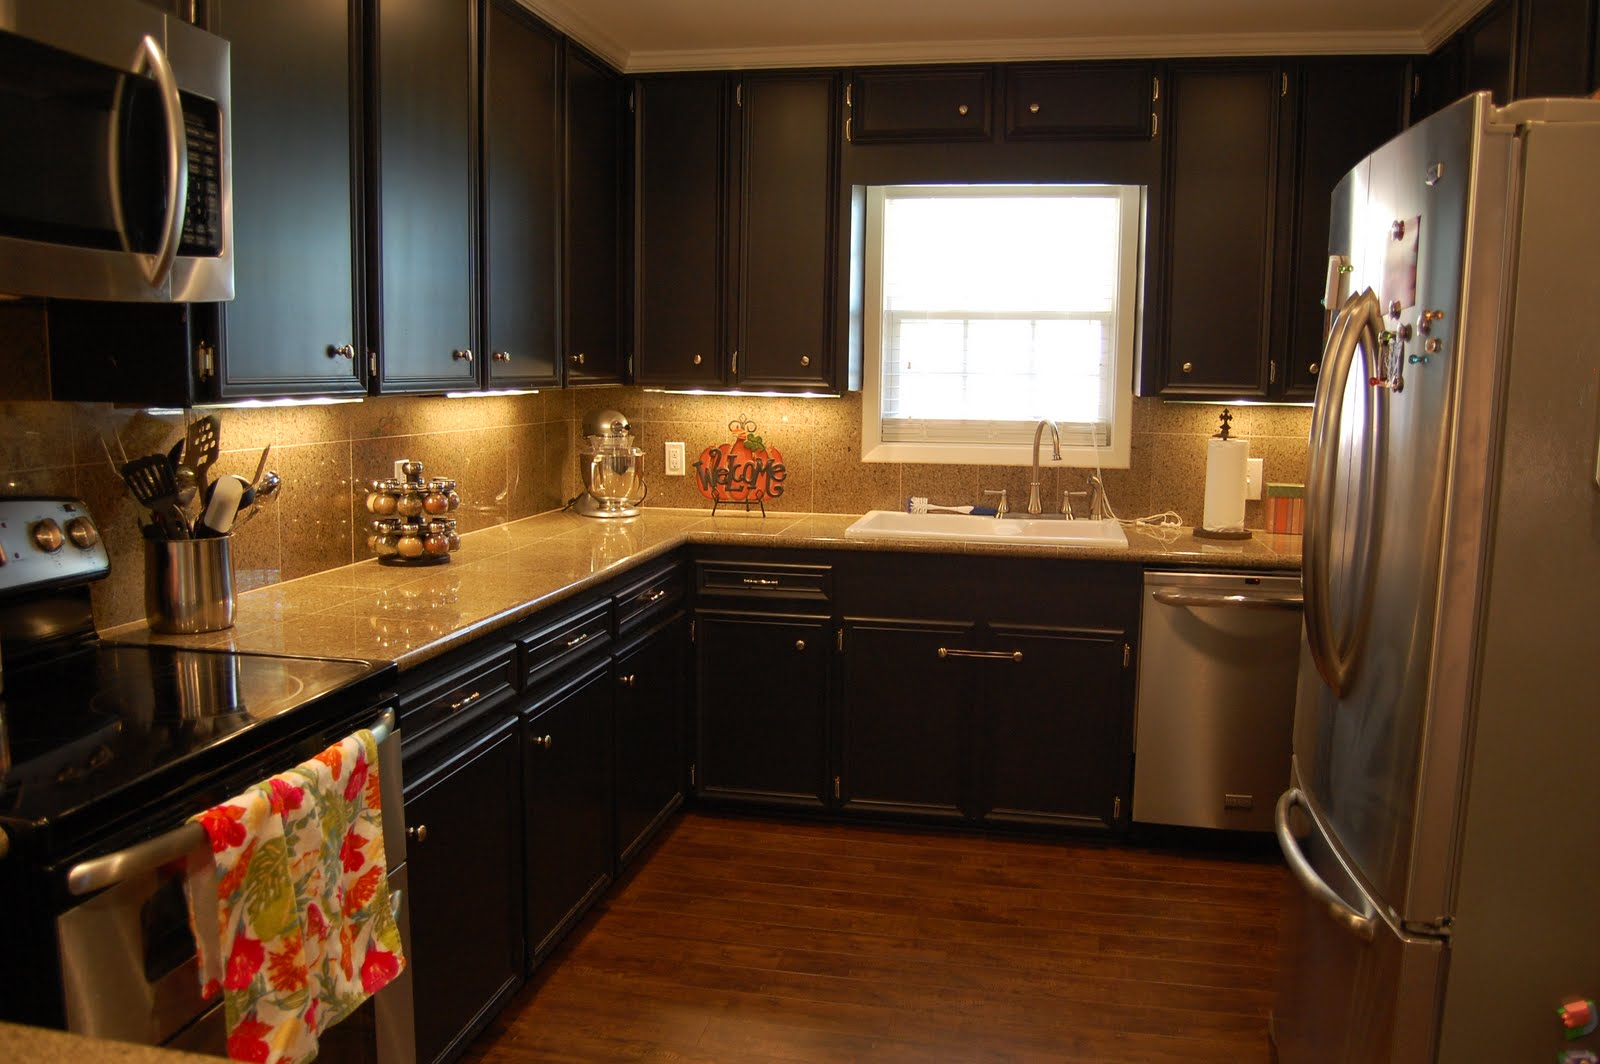 Musings of a Farmer's Wife: Kitchen Remodel Pictures!